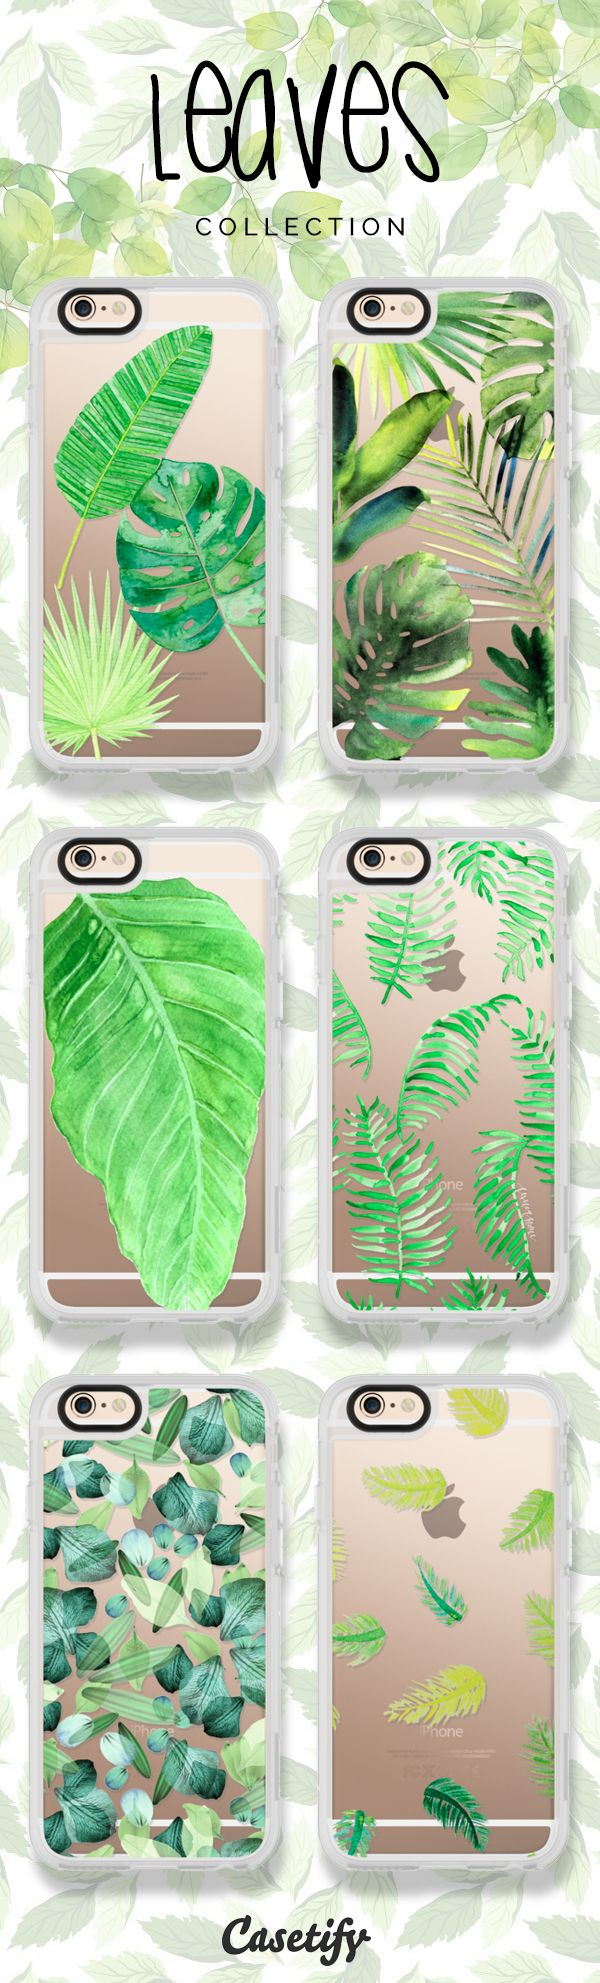 Every character from trees, values from roots and change from #leaves Tap this link to shop the featured cases: https://www.casetify.com/artworks/E2Ib8RqaDr | @casetify